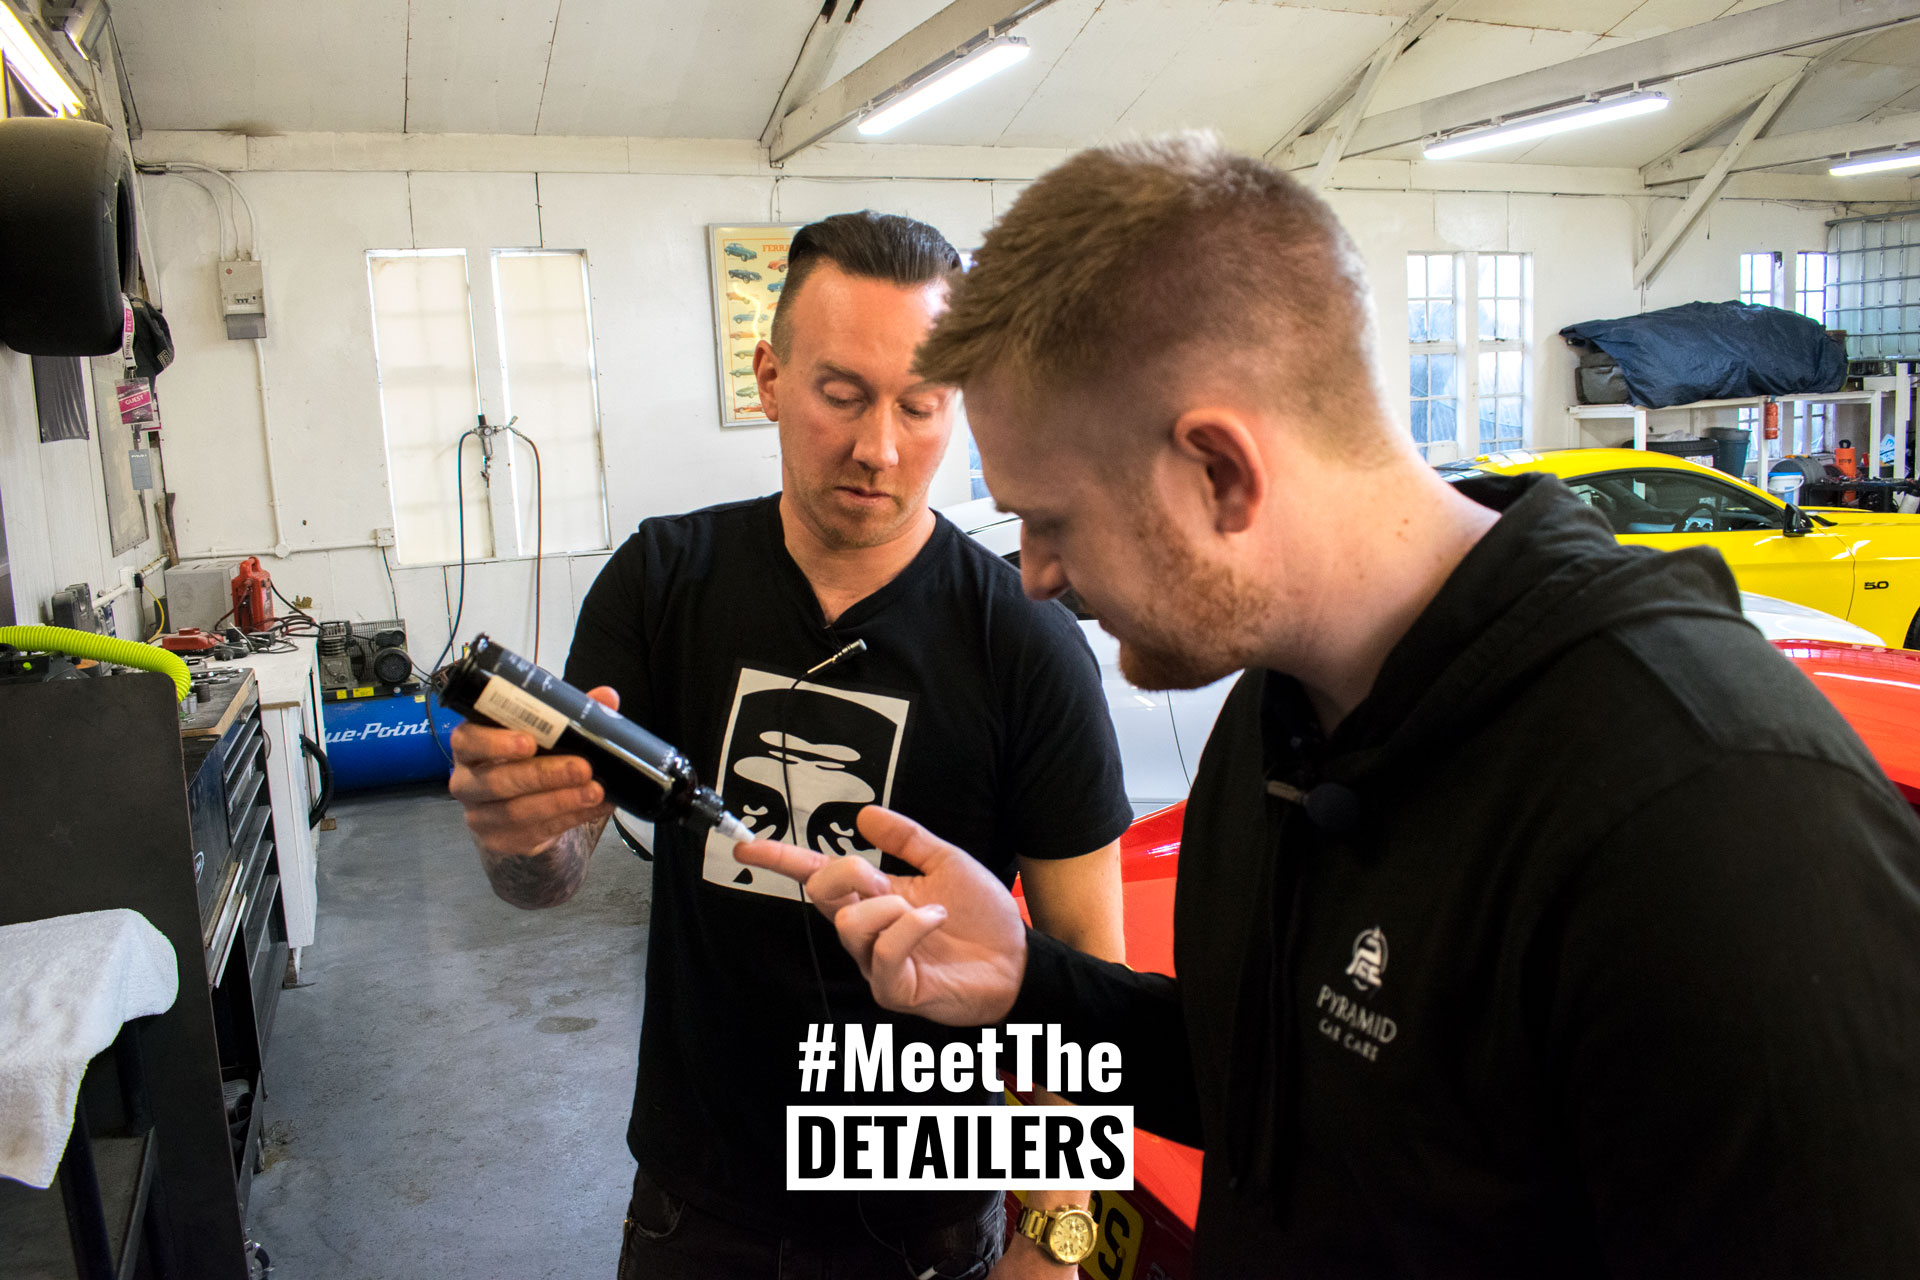 Meet-The-Detailers-Questions